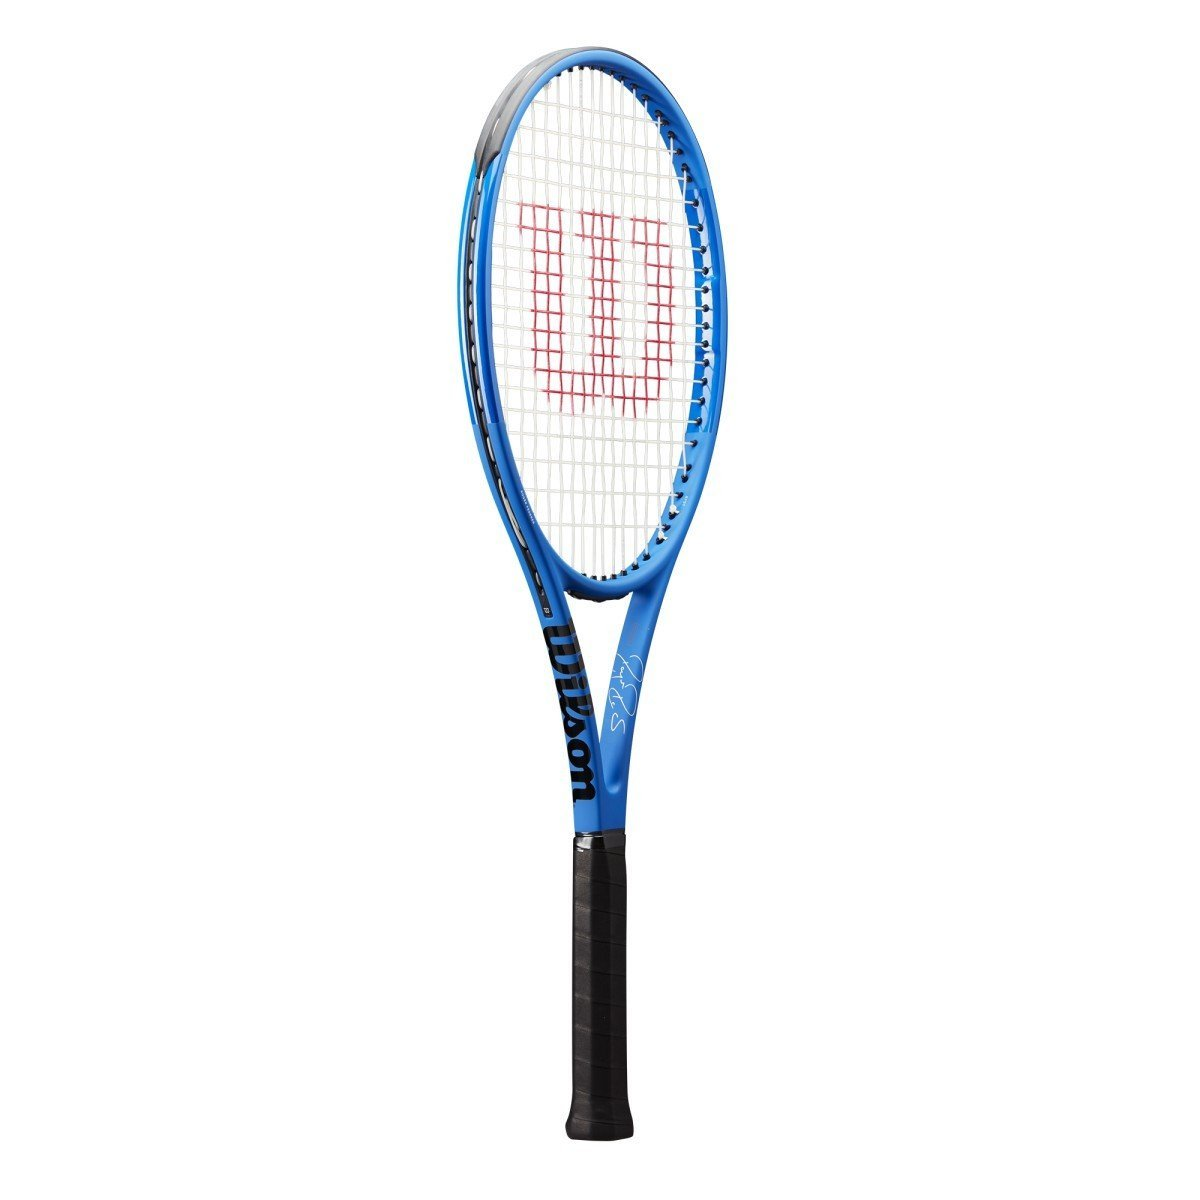 Wilson Tennis Racket – Pro Staff RF97 Autograph Limited Edition 2019